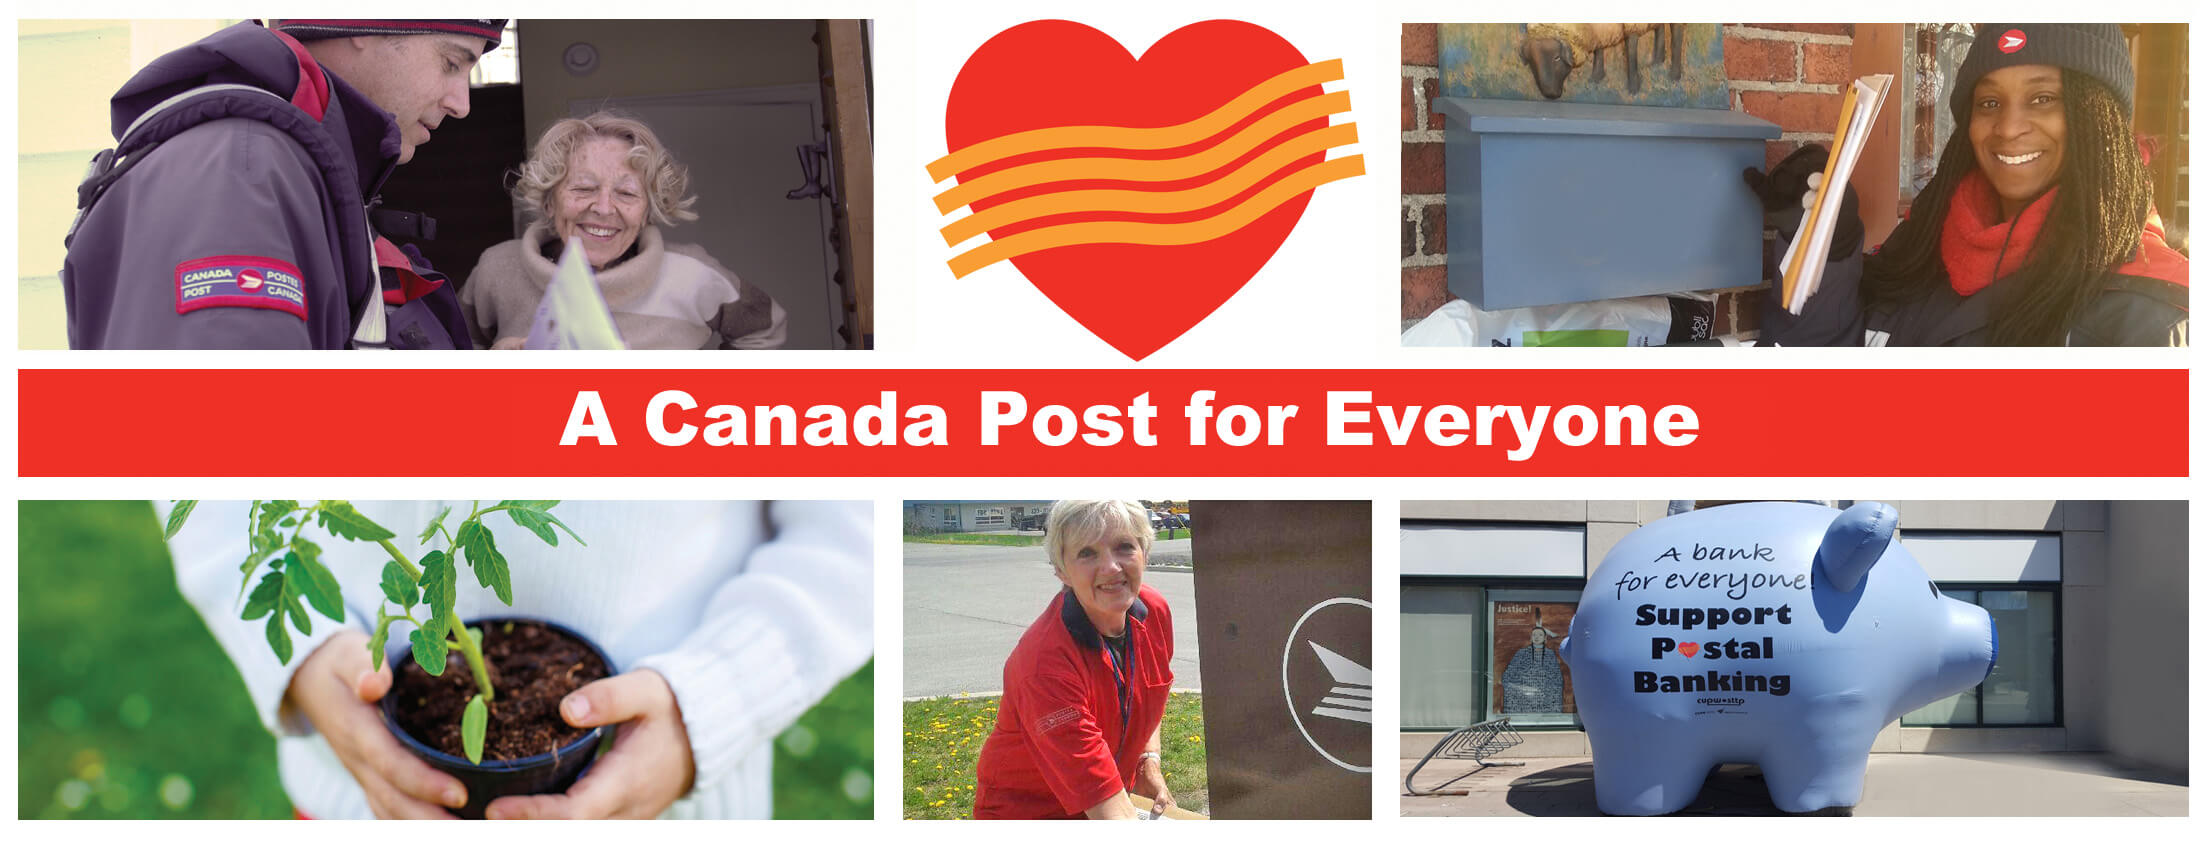 A Canada Post for Everyone